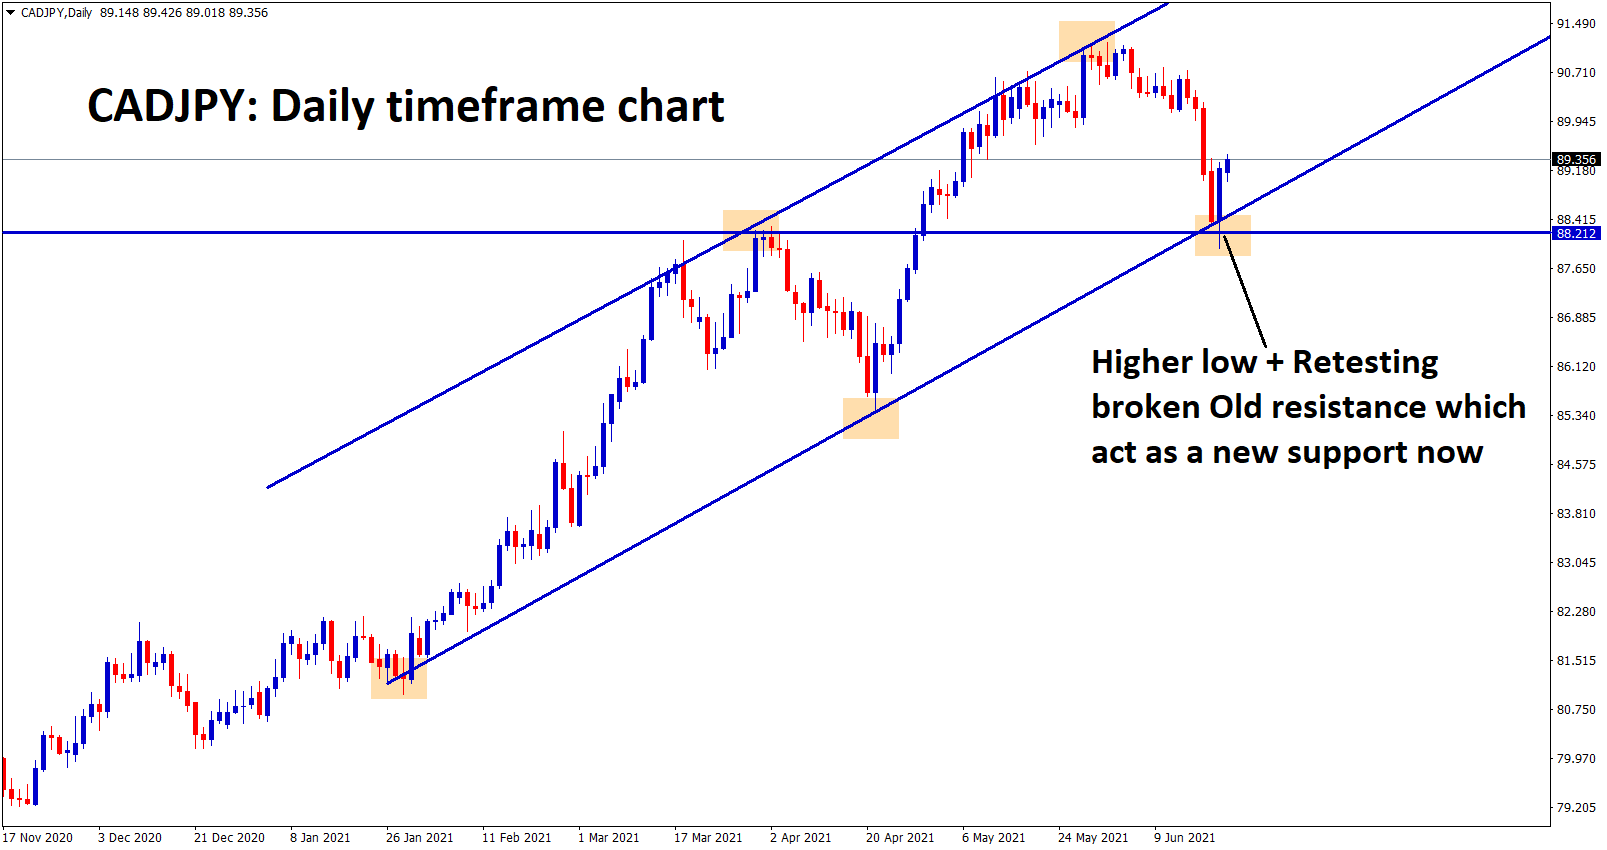 CADJPY bounced back after hitting the higher low of the trend line Retest zone of the previous resistance